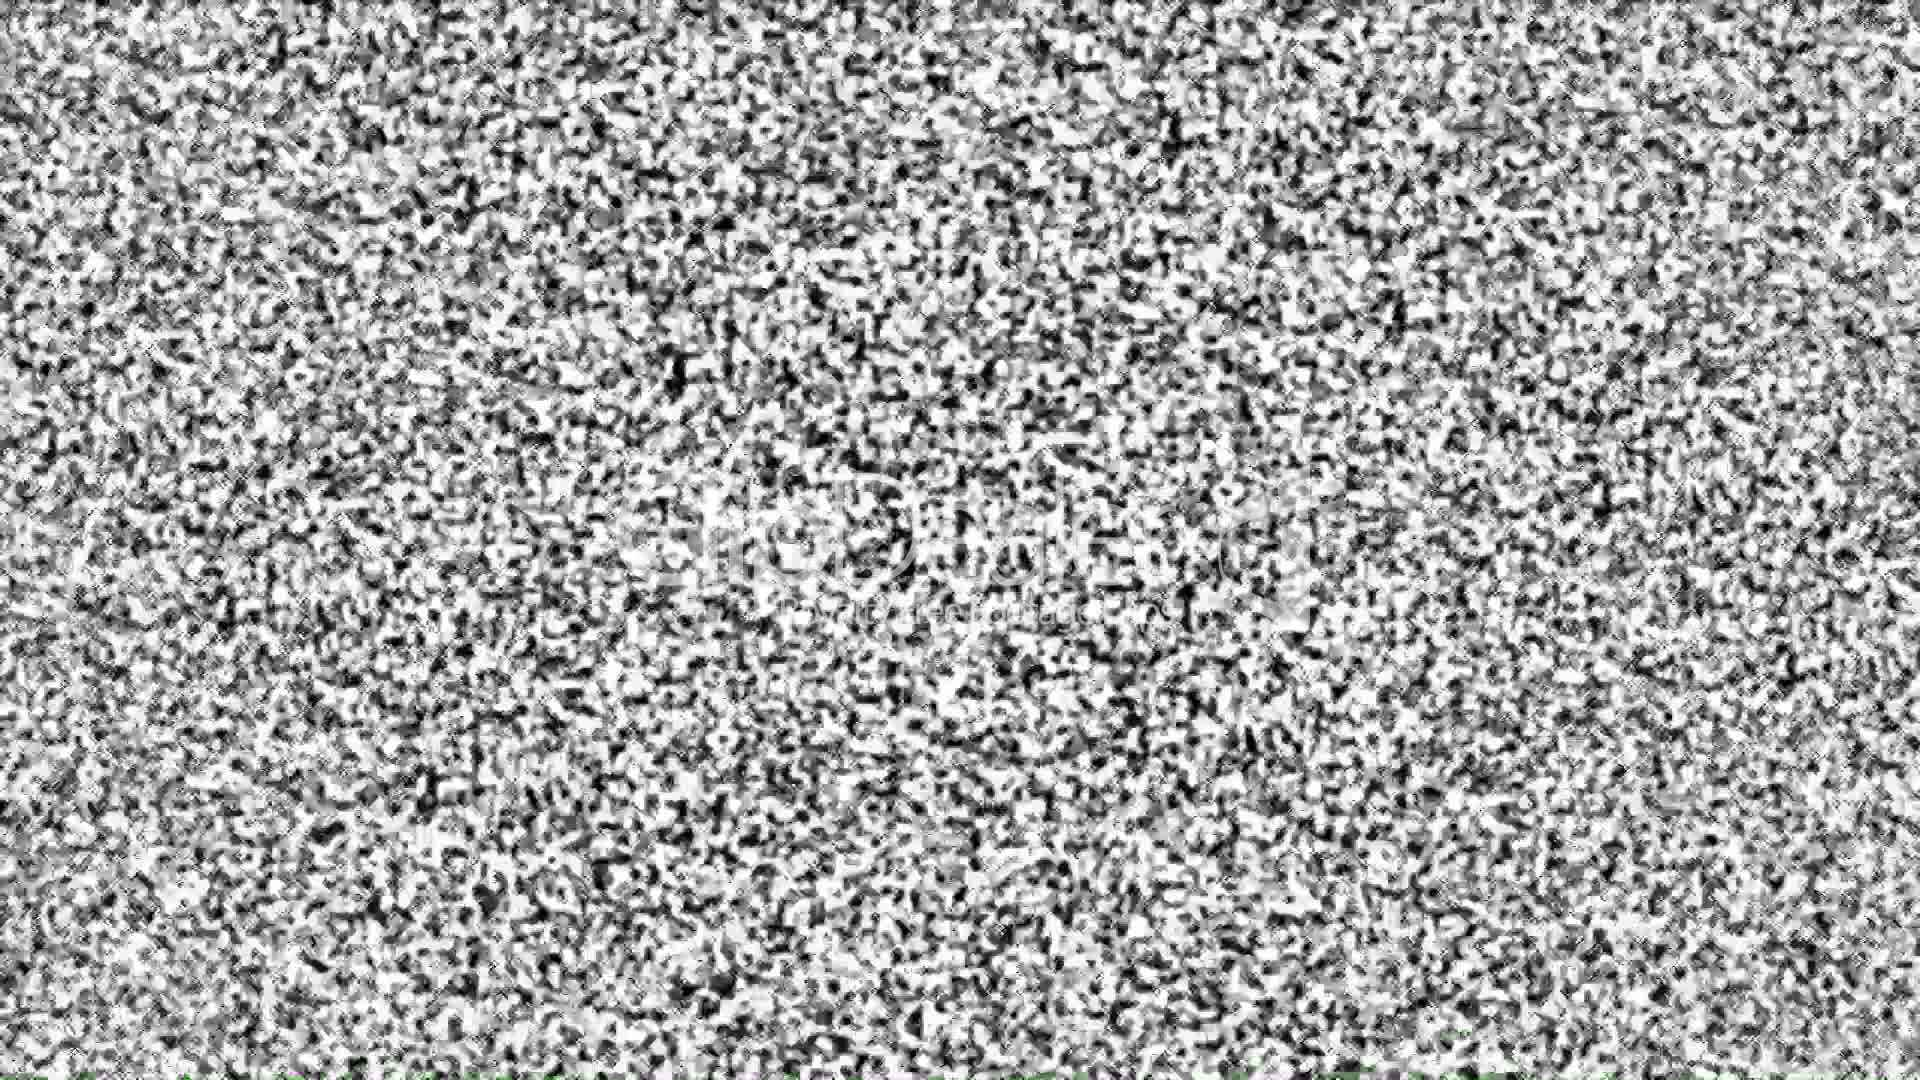 television static  royalty